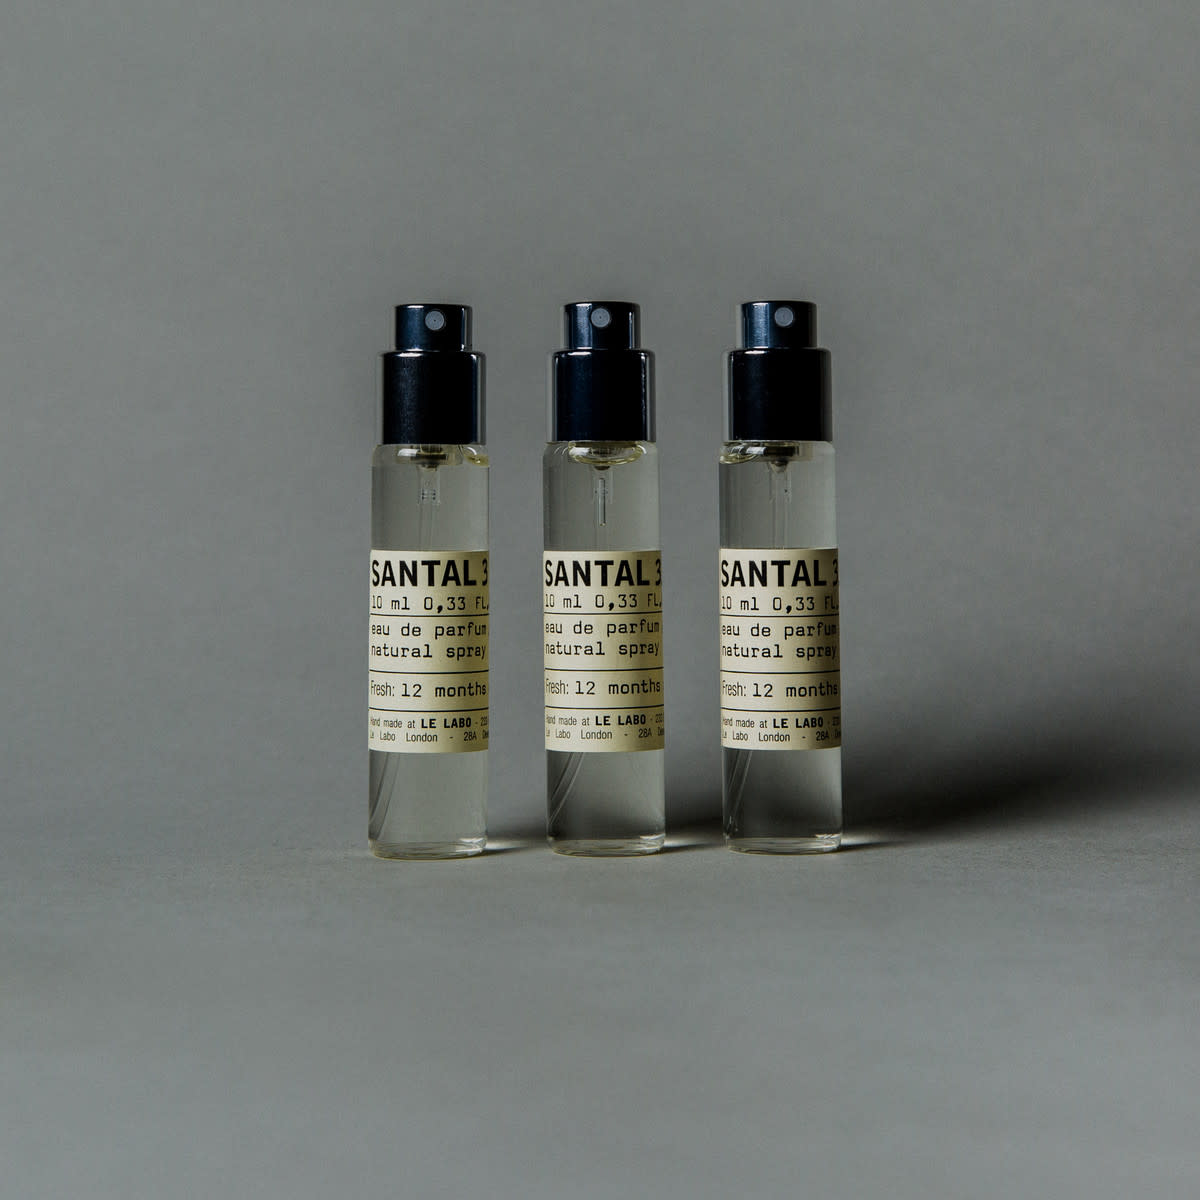 Le Labo Santal 33: The Scent That Went From Ruggedly Cool to Utterly